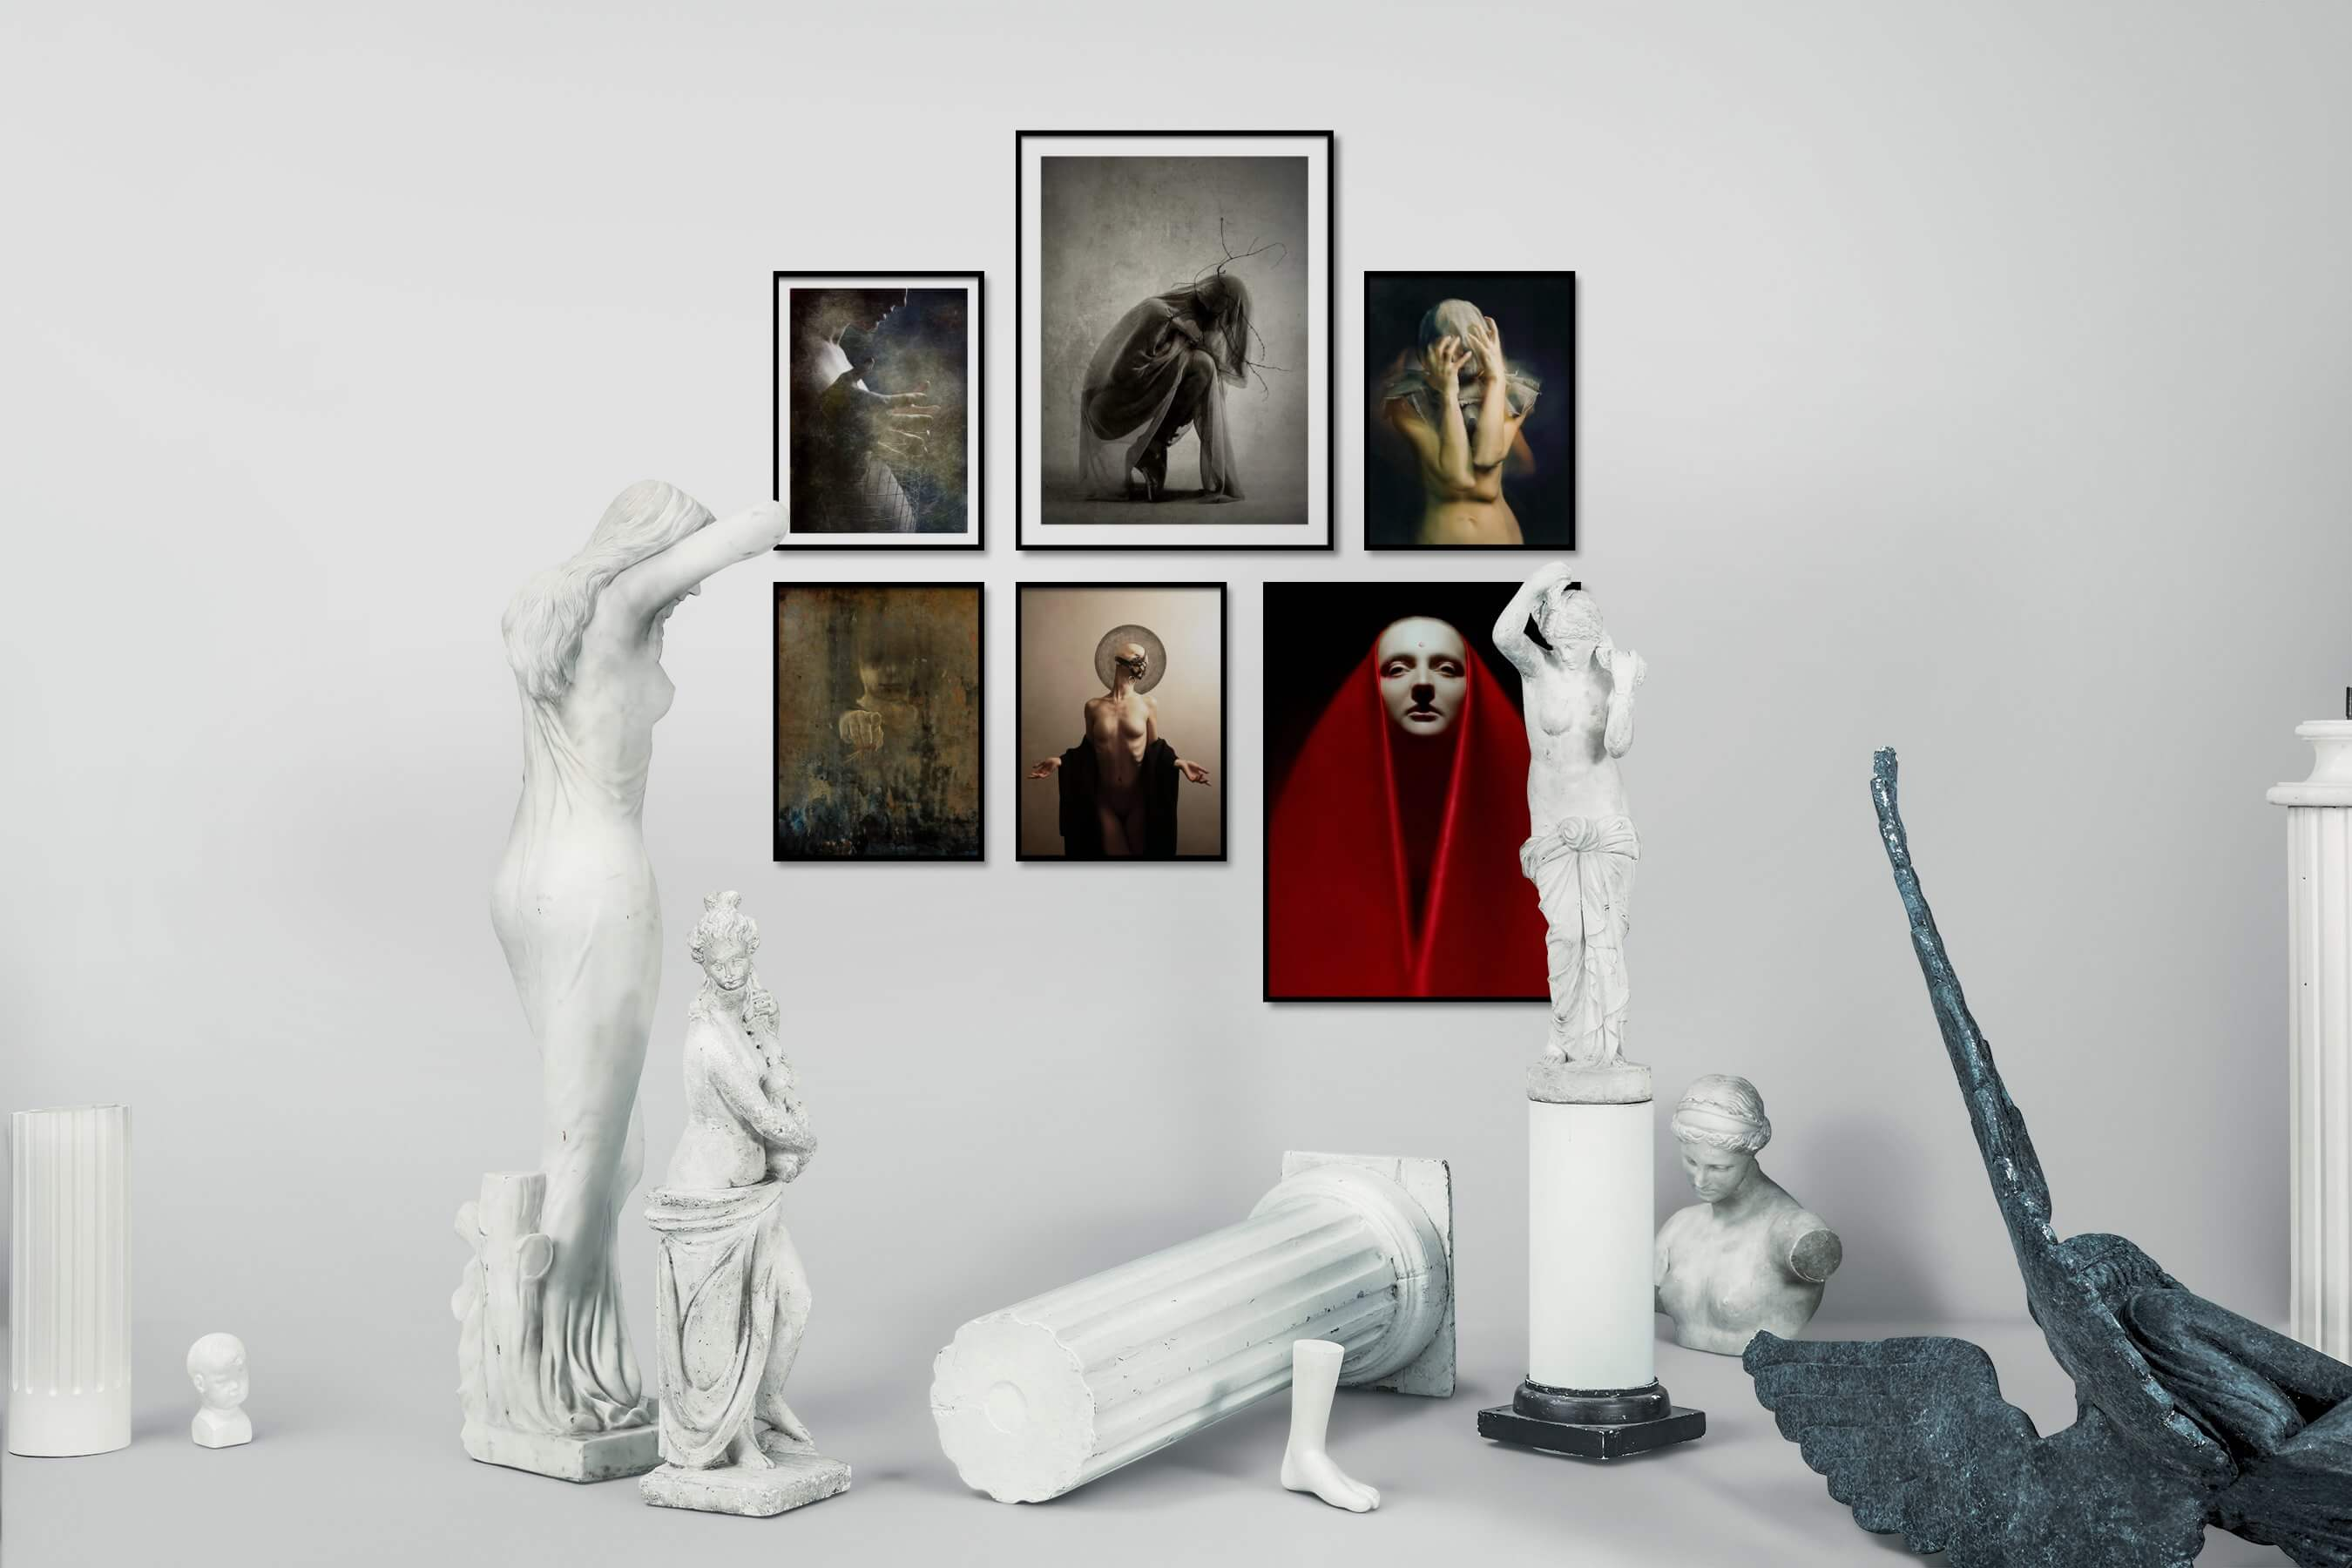 Gallery wall idea with six framed pictures arranged on a wall depicting Artsy, Vintage, Fashion & Beauty, and Black & White